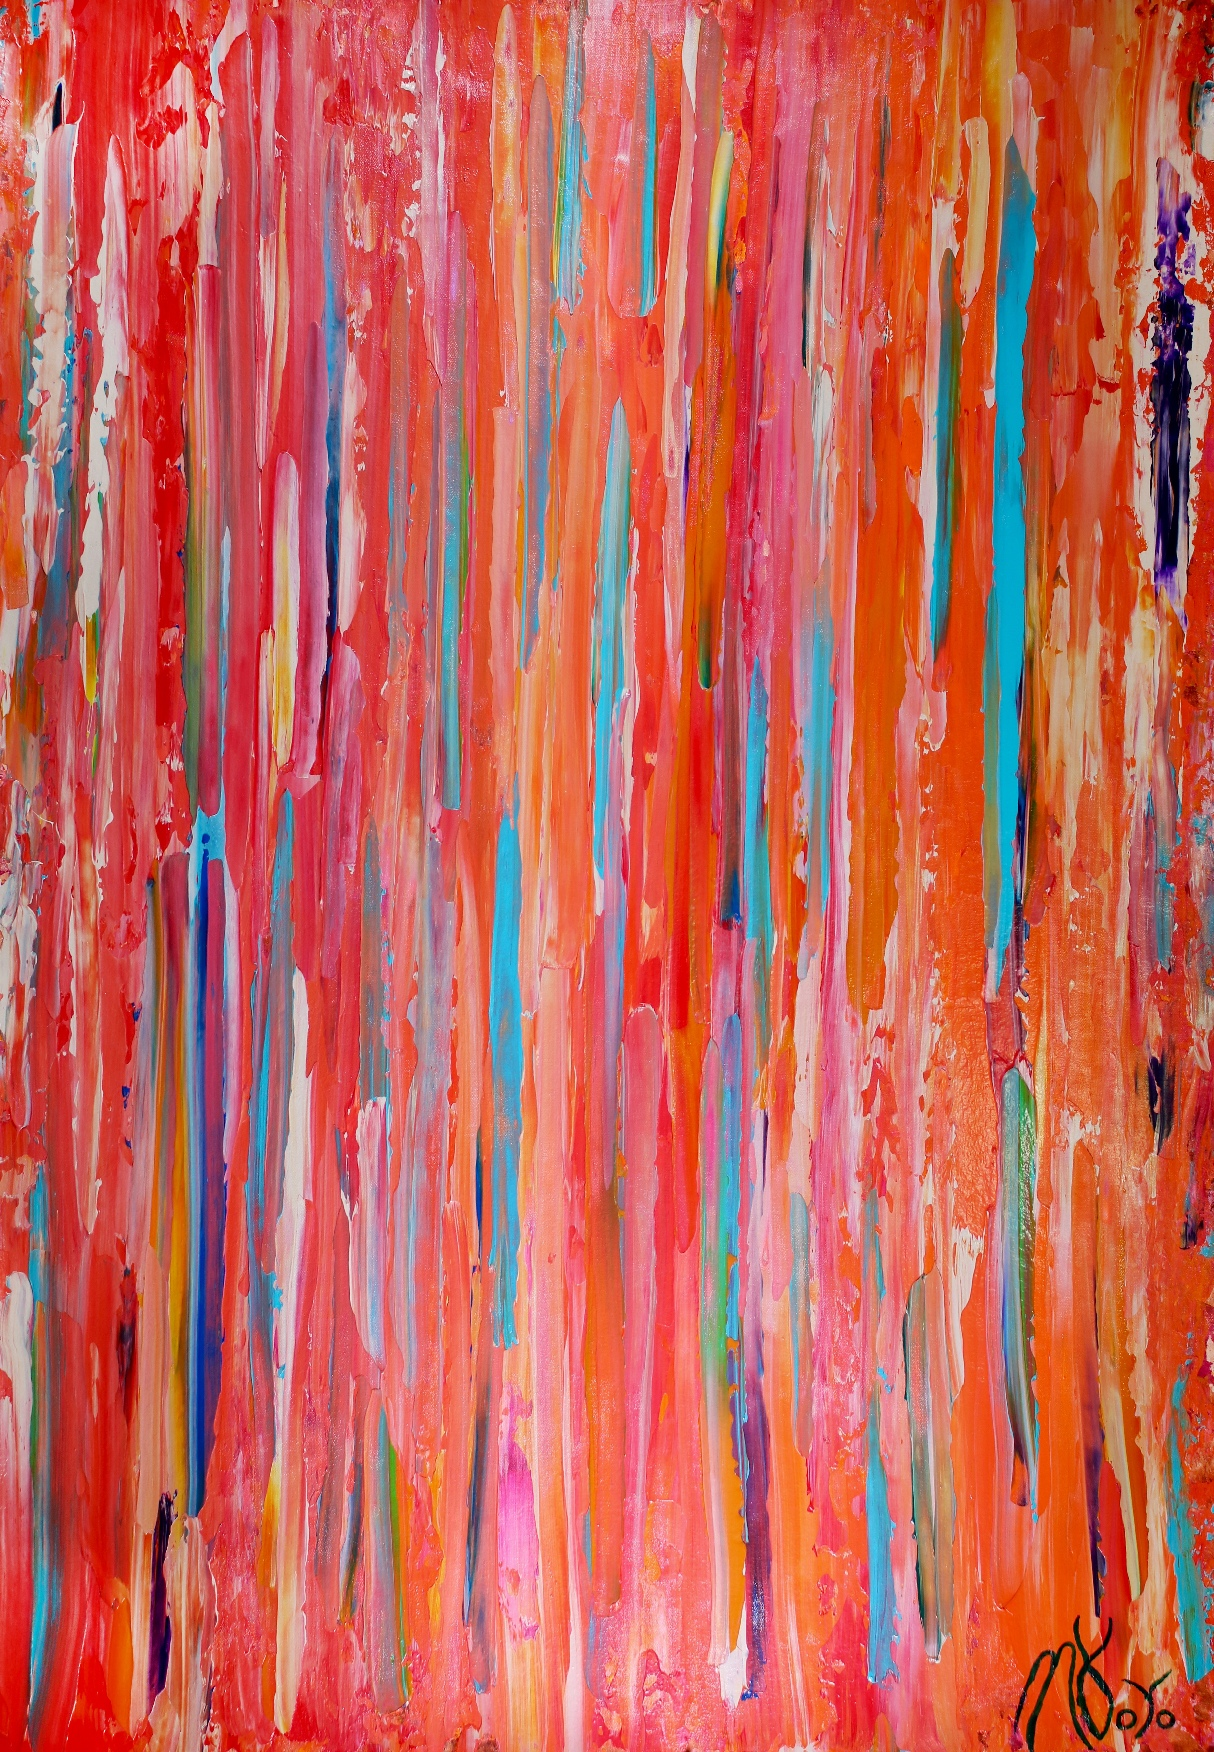 Too Many Experiences To Remember (2018) Abstract Expressionist Acrylic painting by Nestor Toro